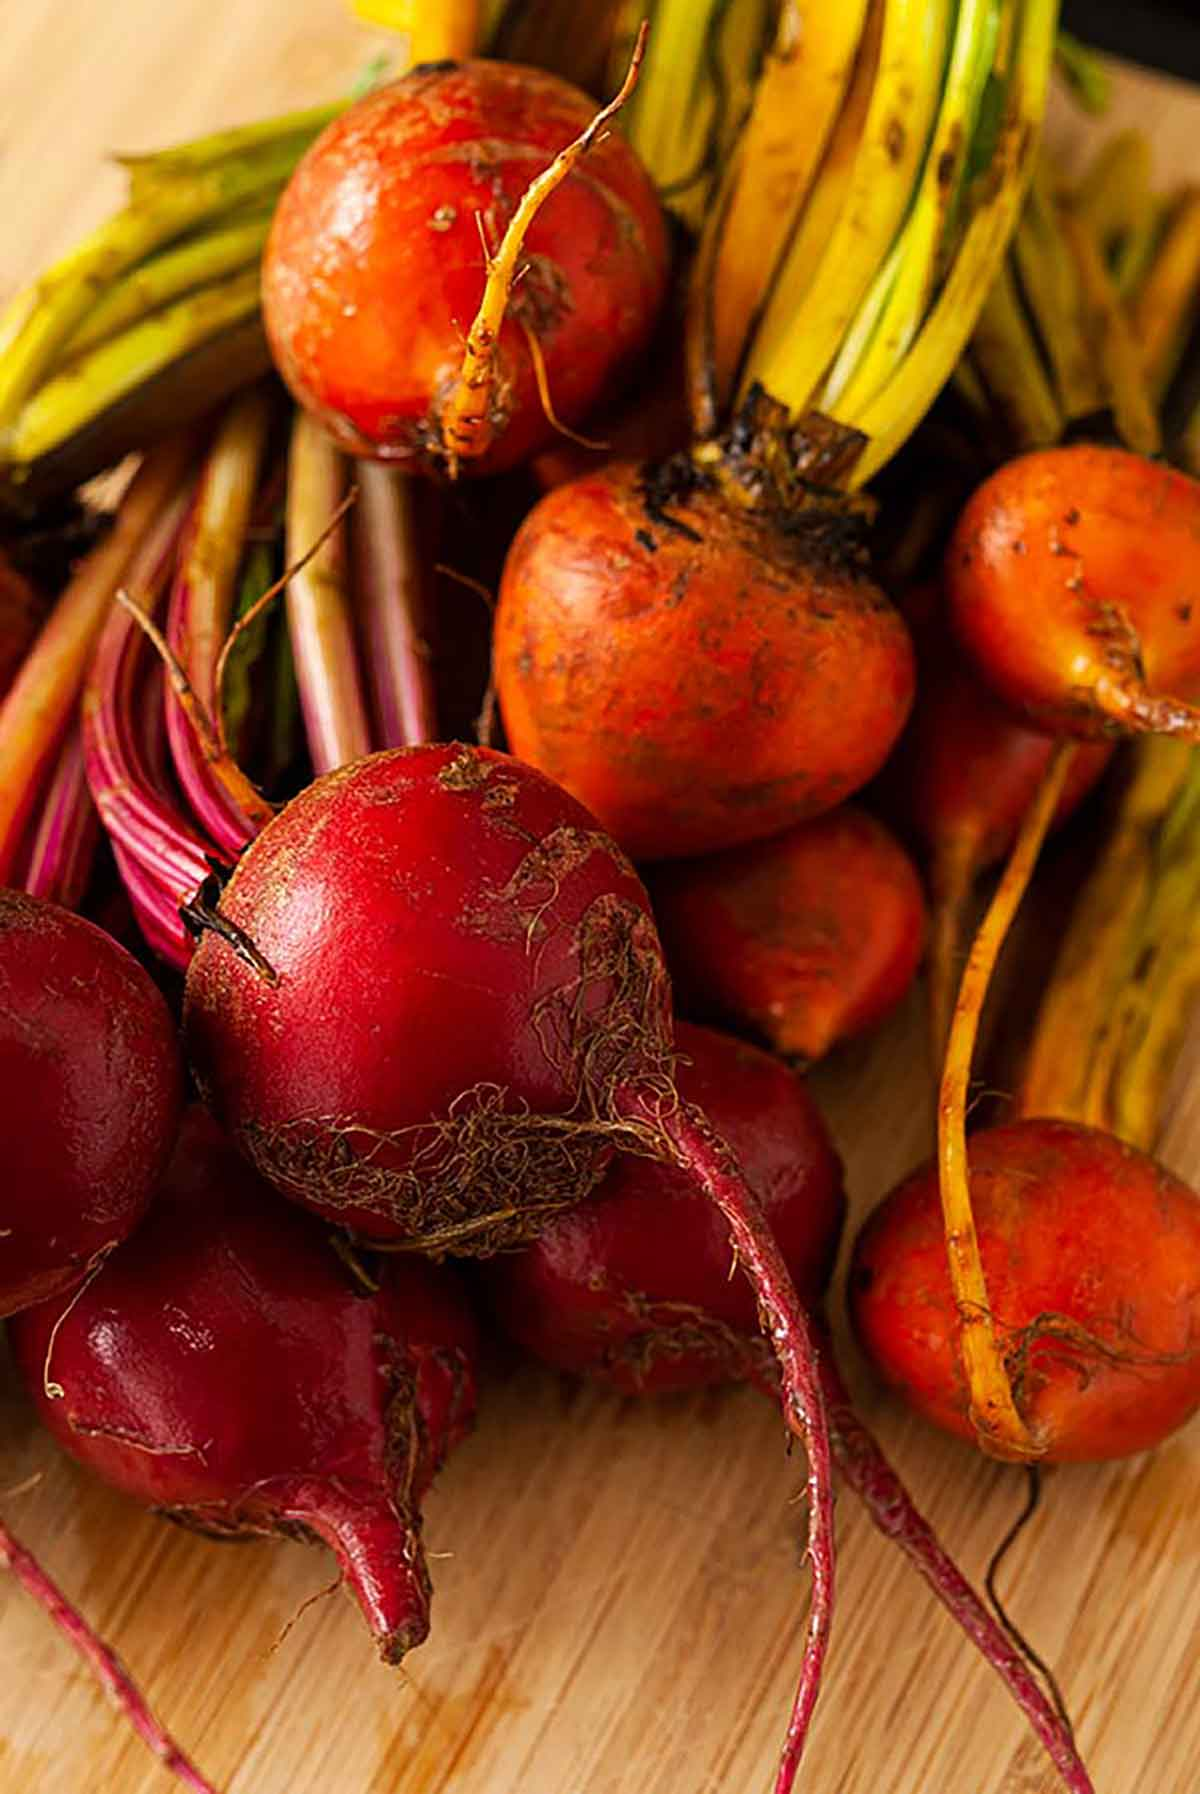 2 varieties of raw beets on a wooden cutting board.